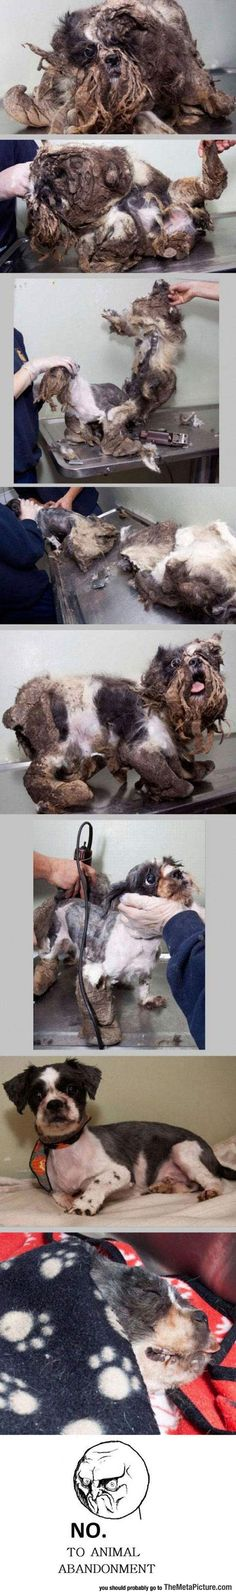 Pets are FOREVER!! Don't shop - ADOPT!! :) Rescued From The Worst Conditions And Saved